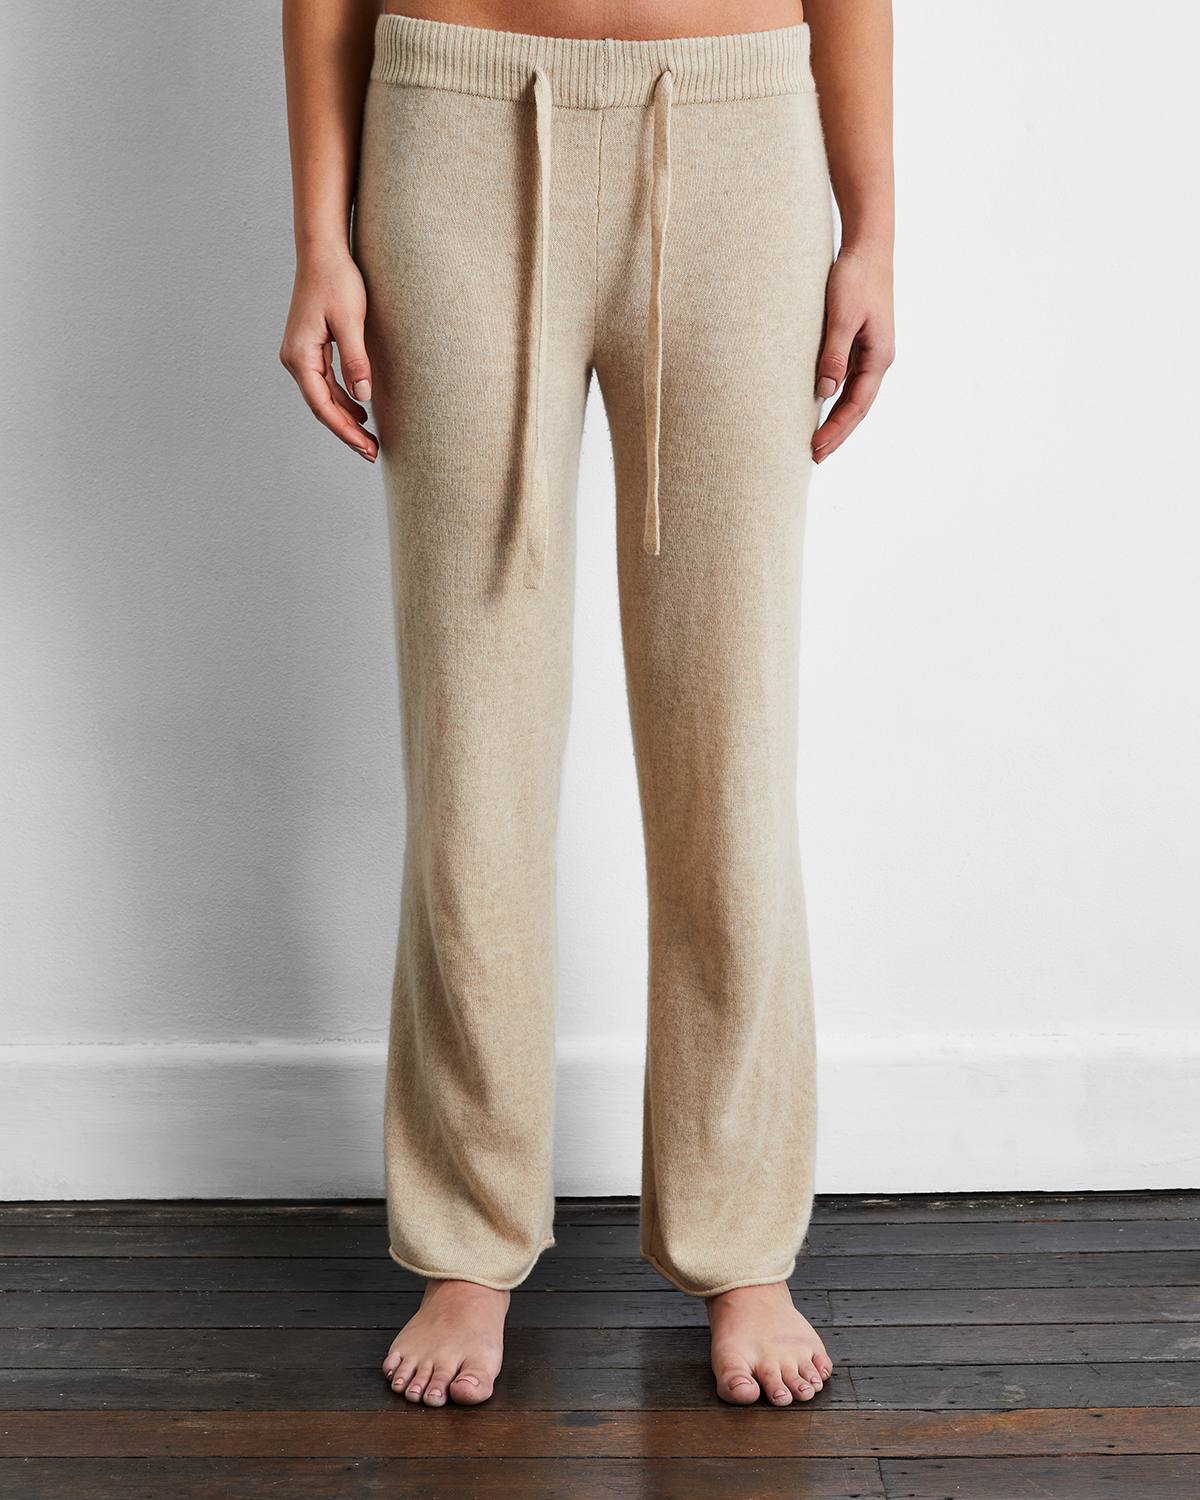 100% Cashmere Pants in Oatmeal